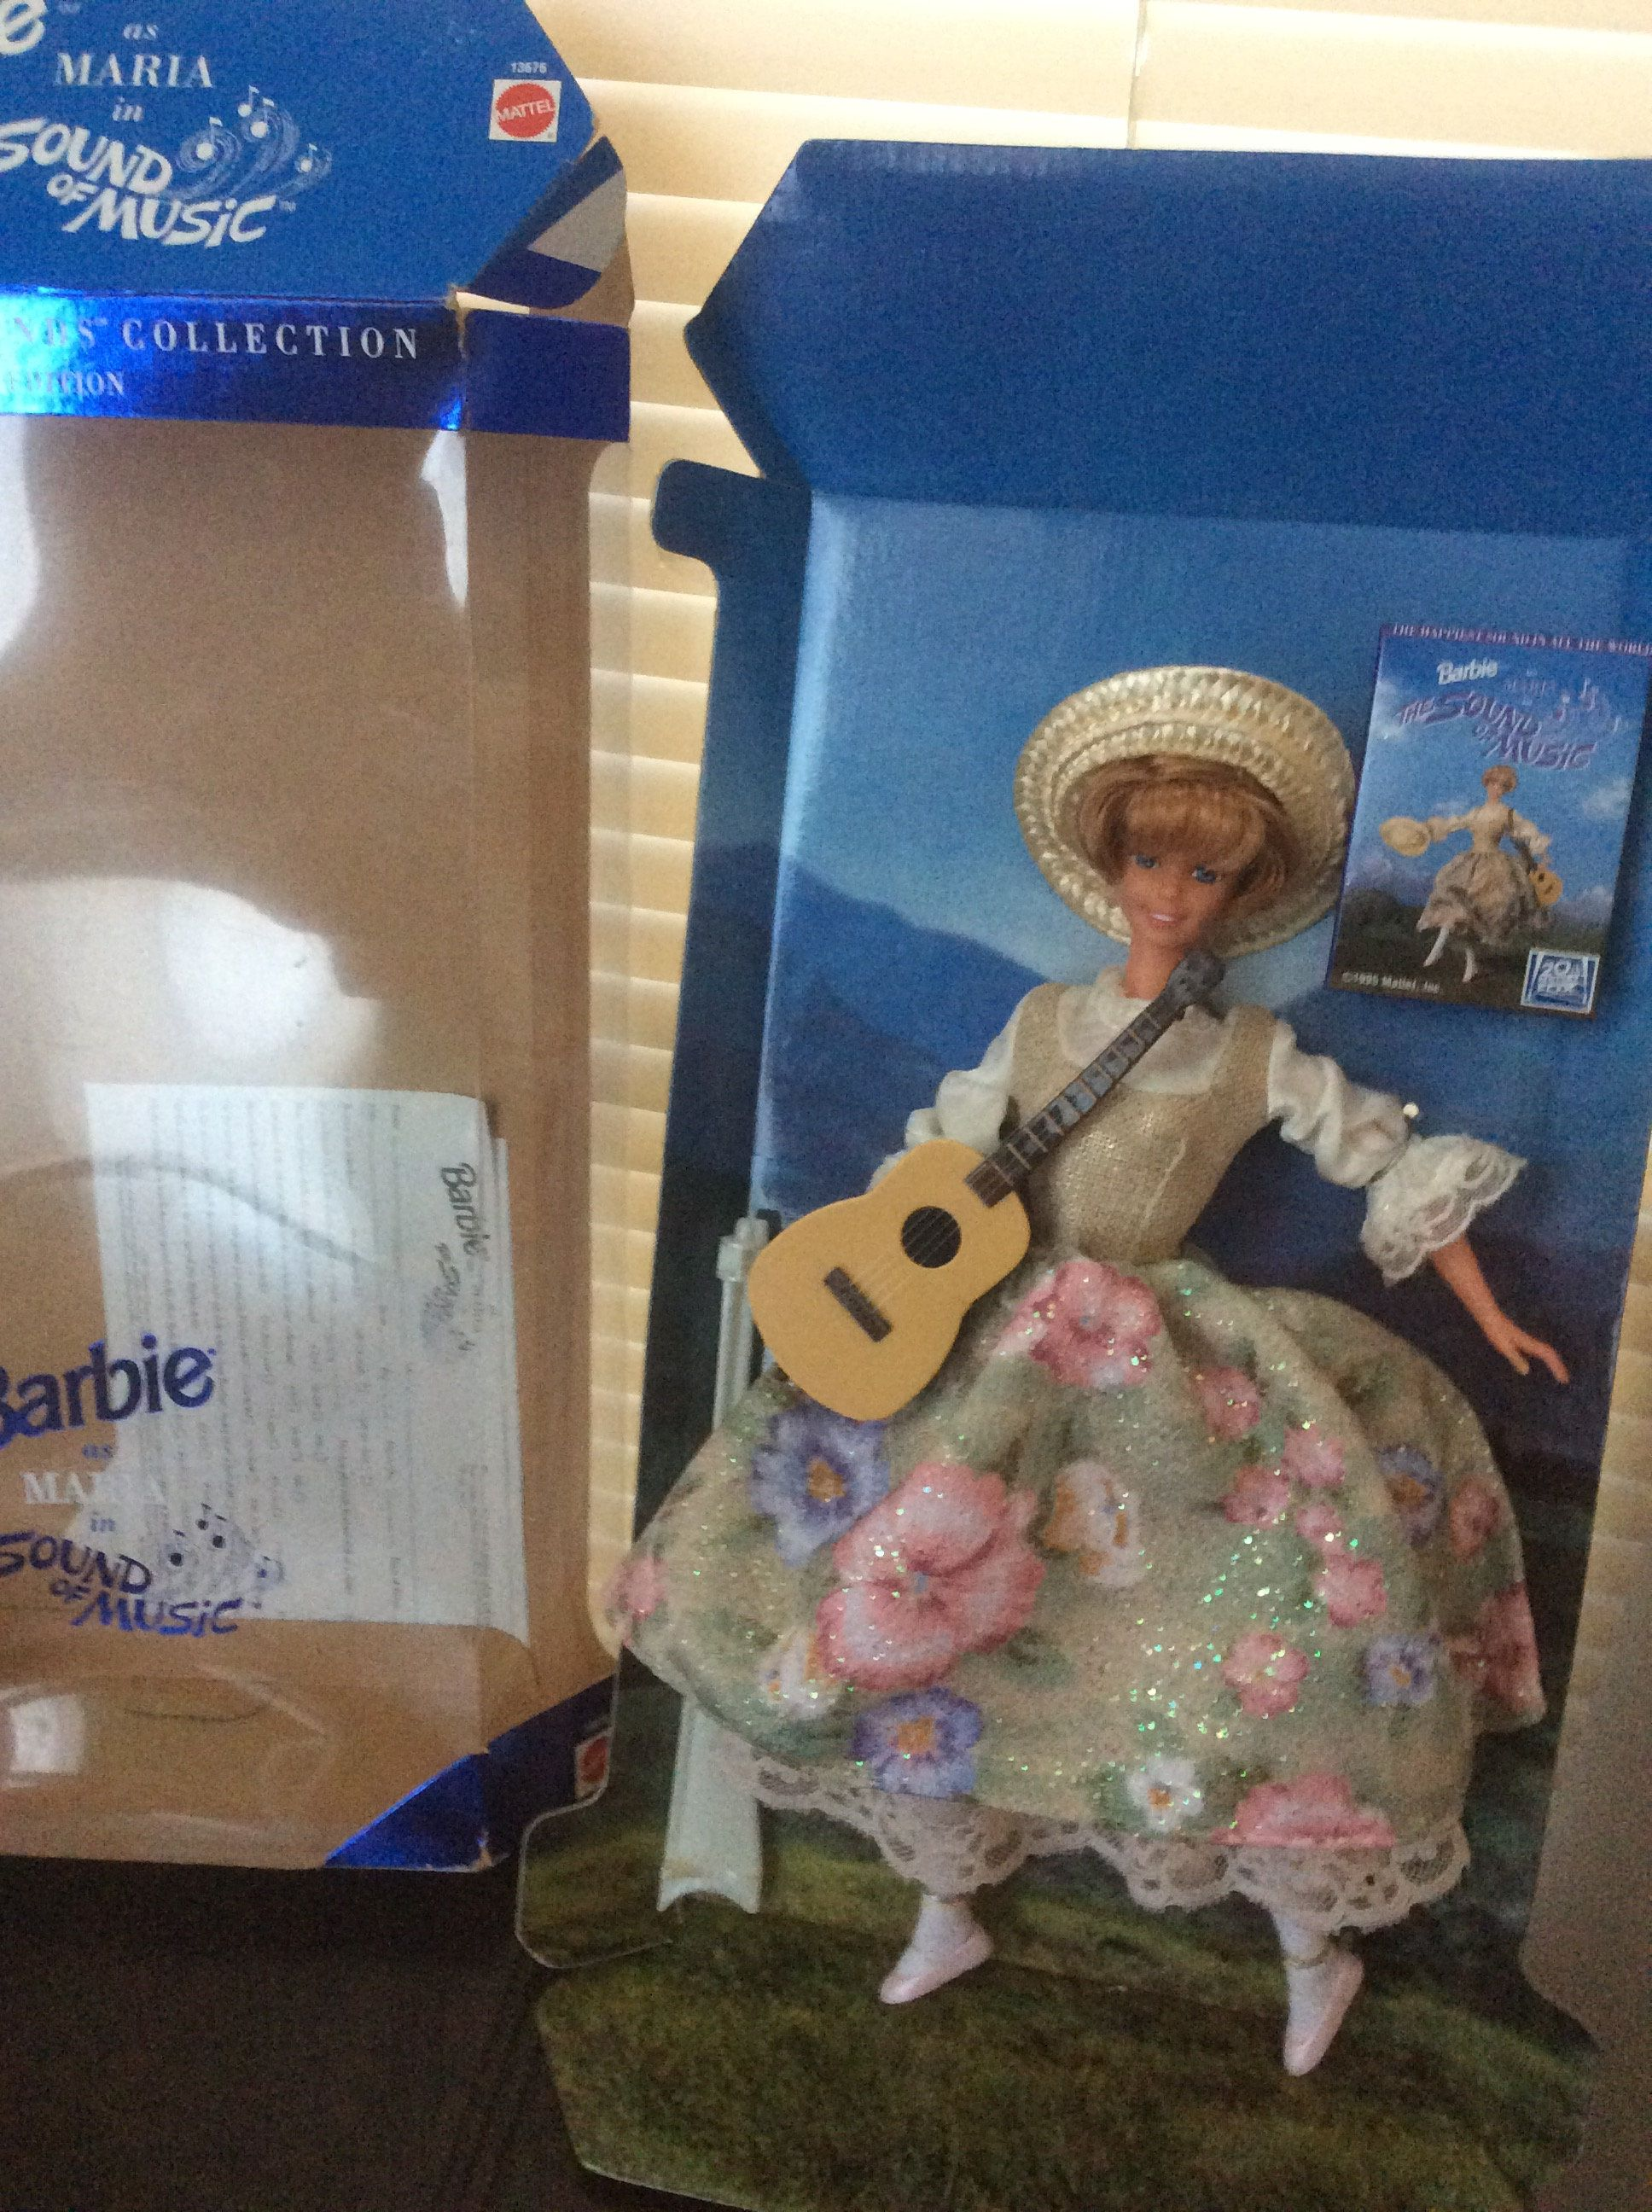 Vintage Barbie as Maria in the Sound of Music Hollywood Legends Collection special edition